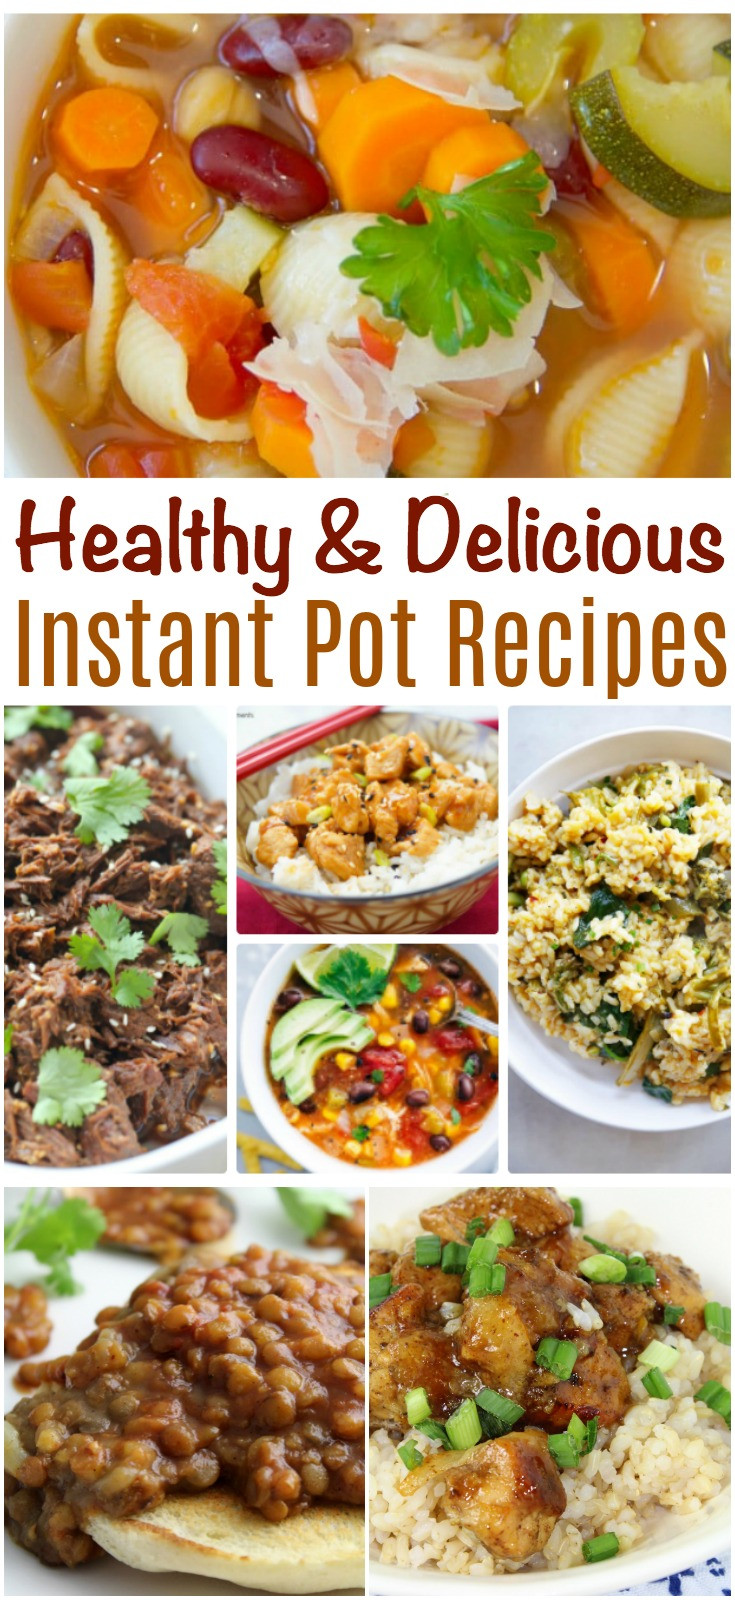 Healthy Instant Pot Dinner Recipes  Healthy and Delicious Instant Pot Recipes